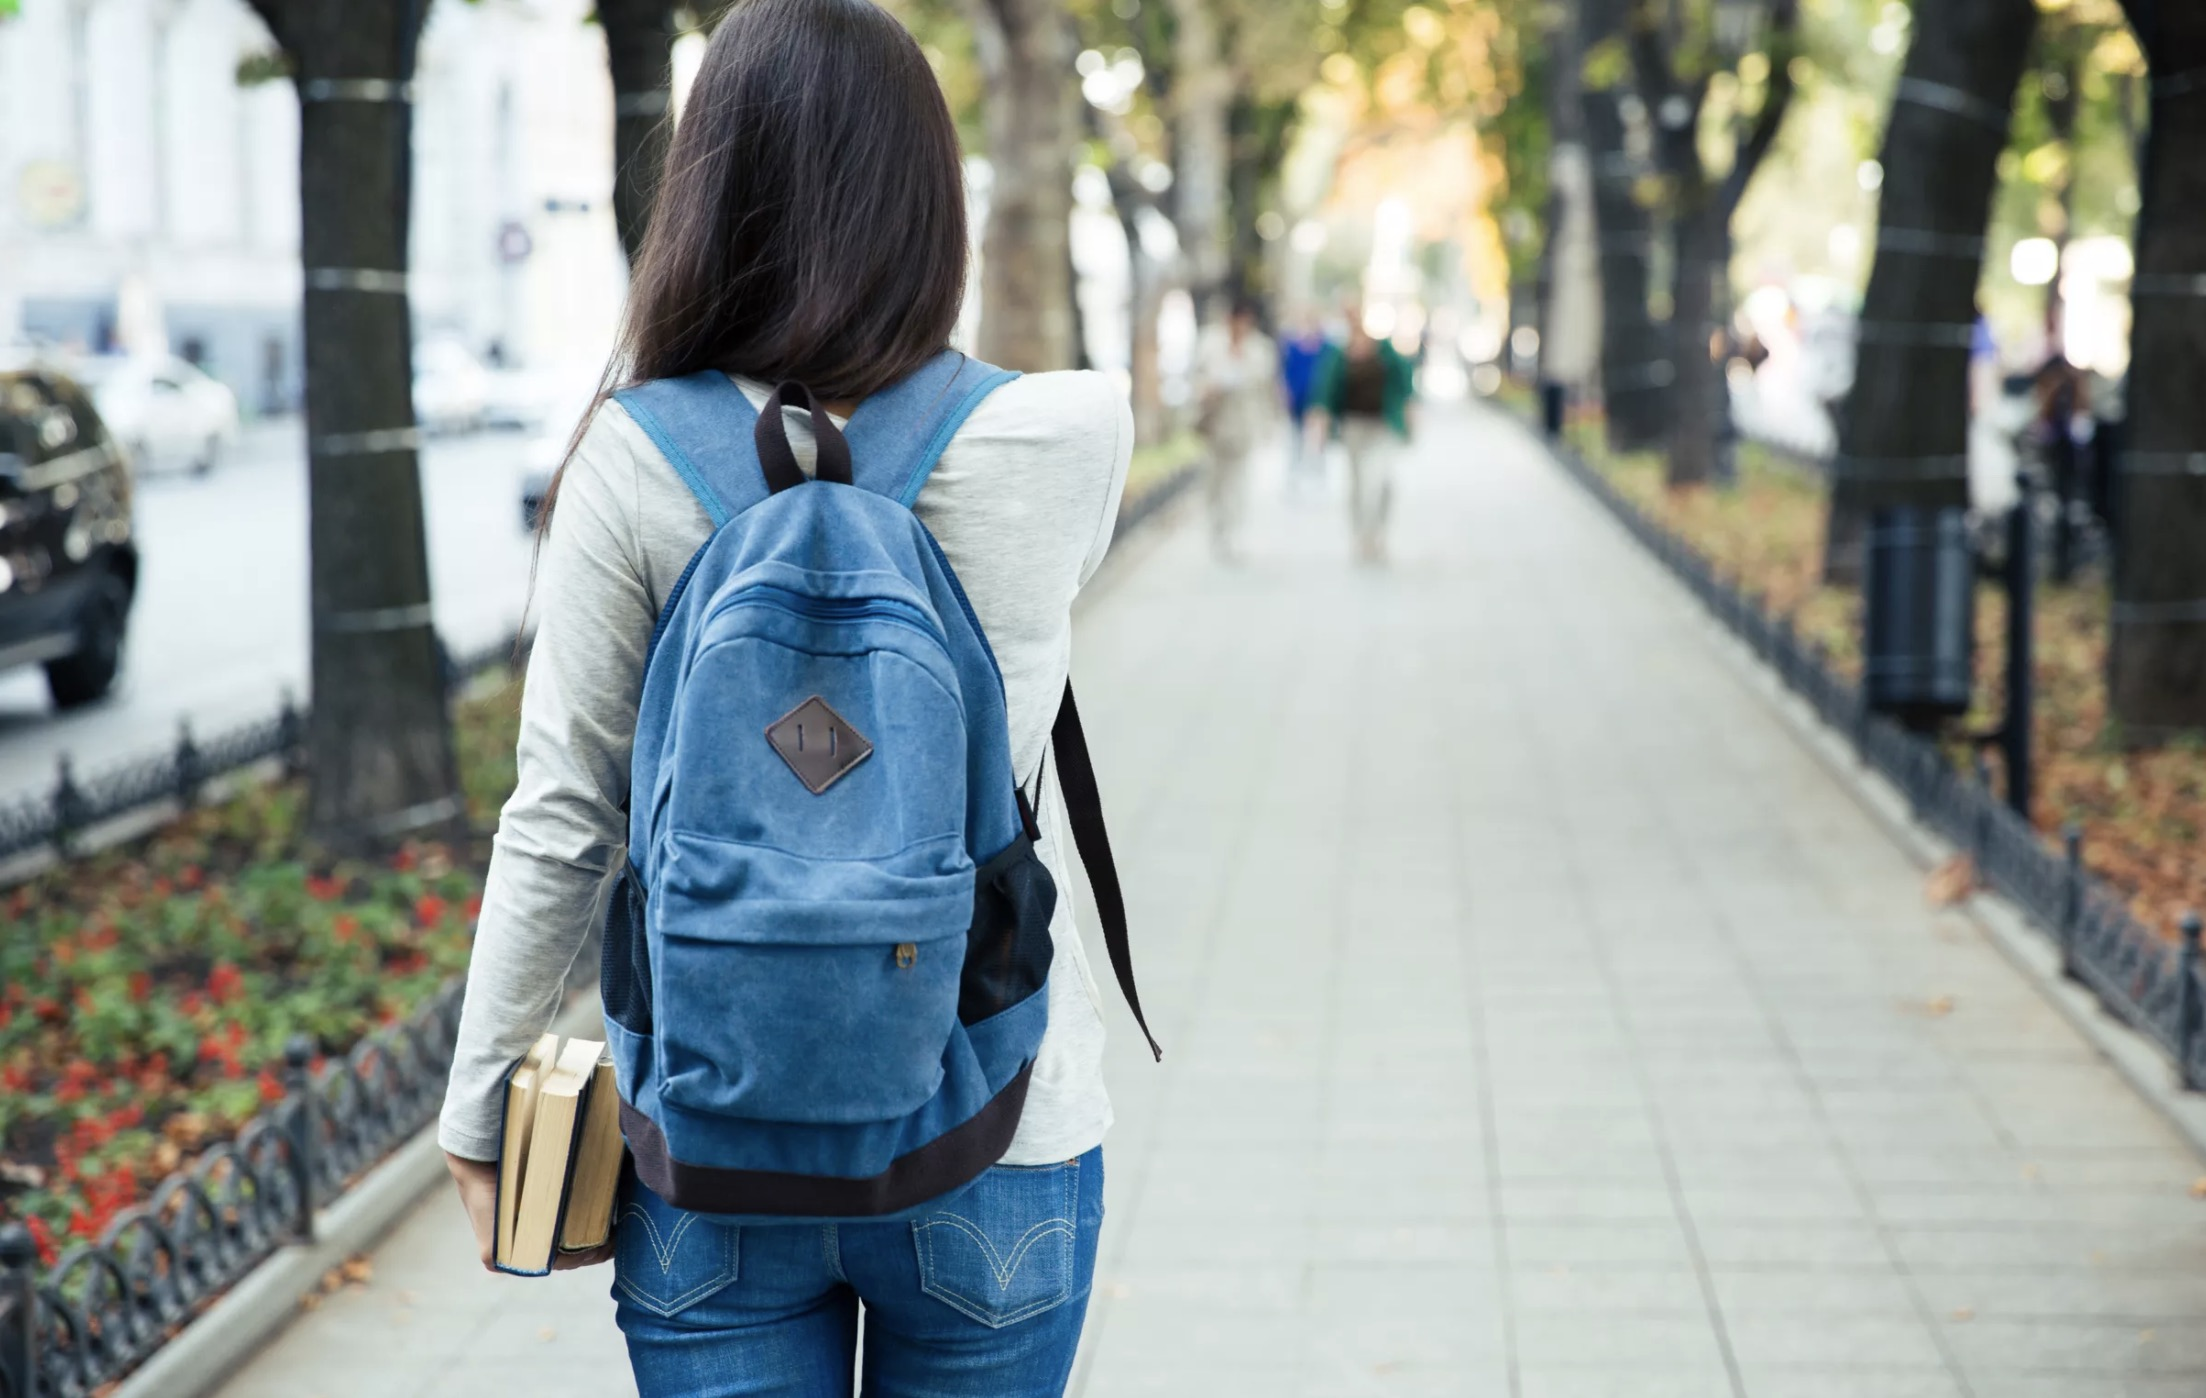 Female College Student with Backpack